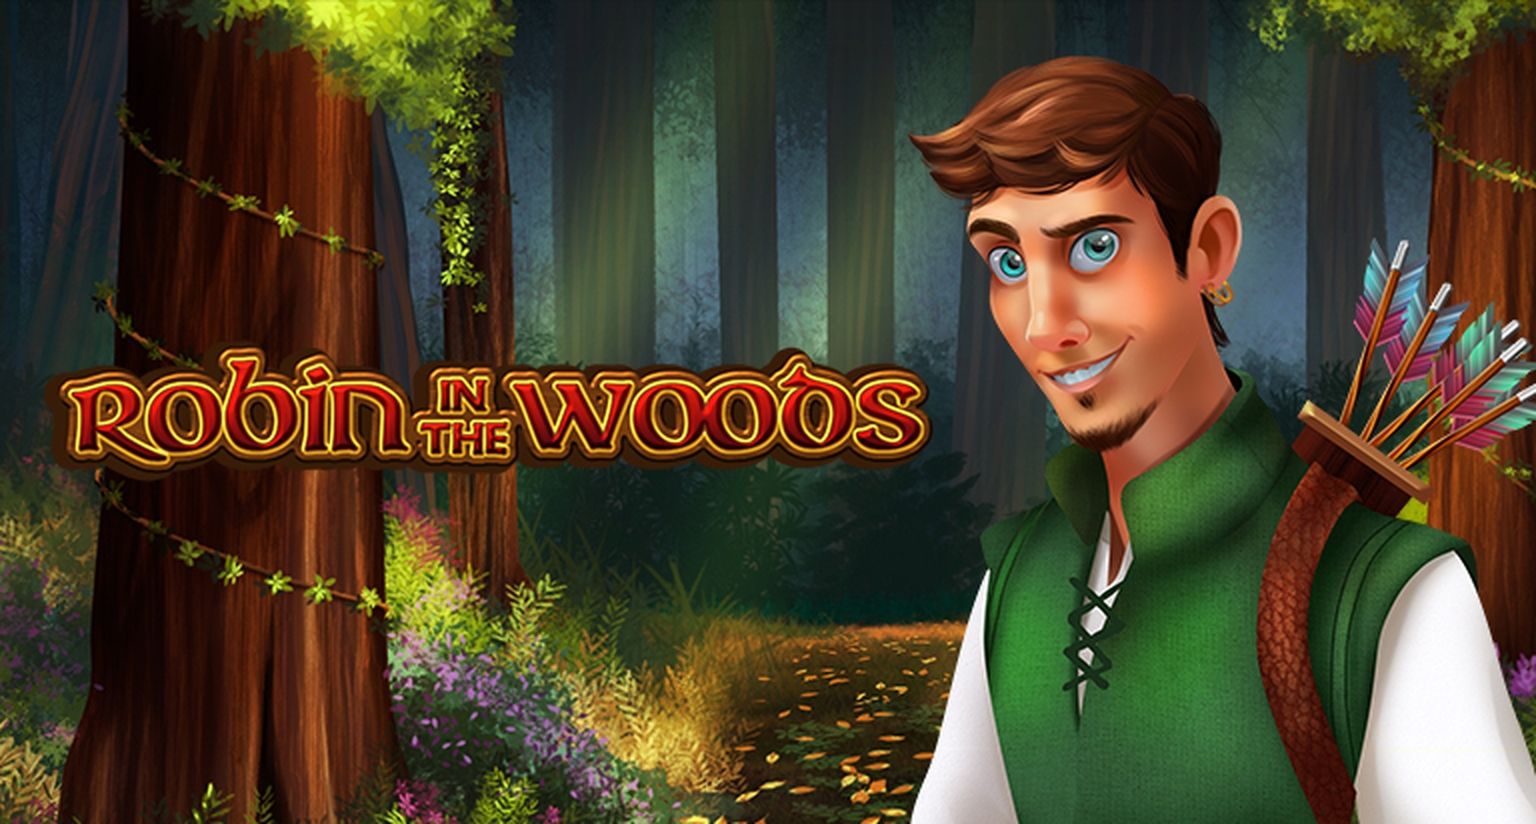 The Robin in the Woods (Arrows Edge) Online Slot Demo Game by Arrows Edge